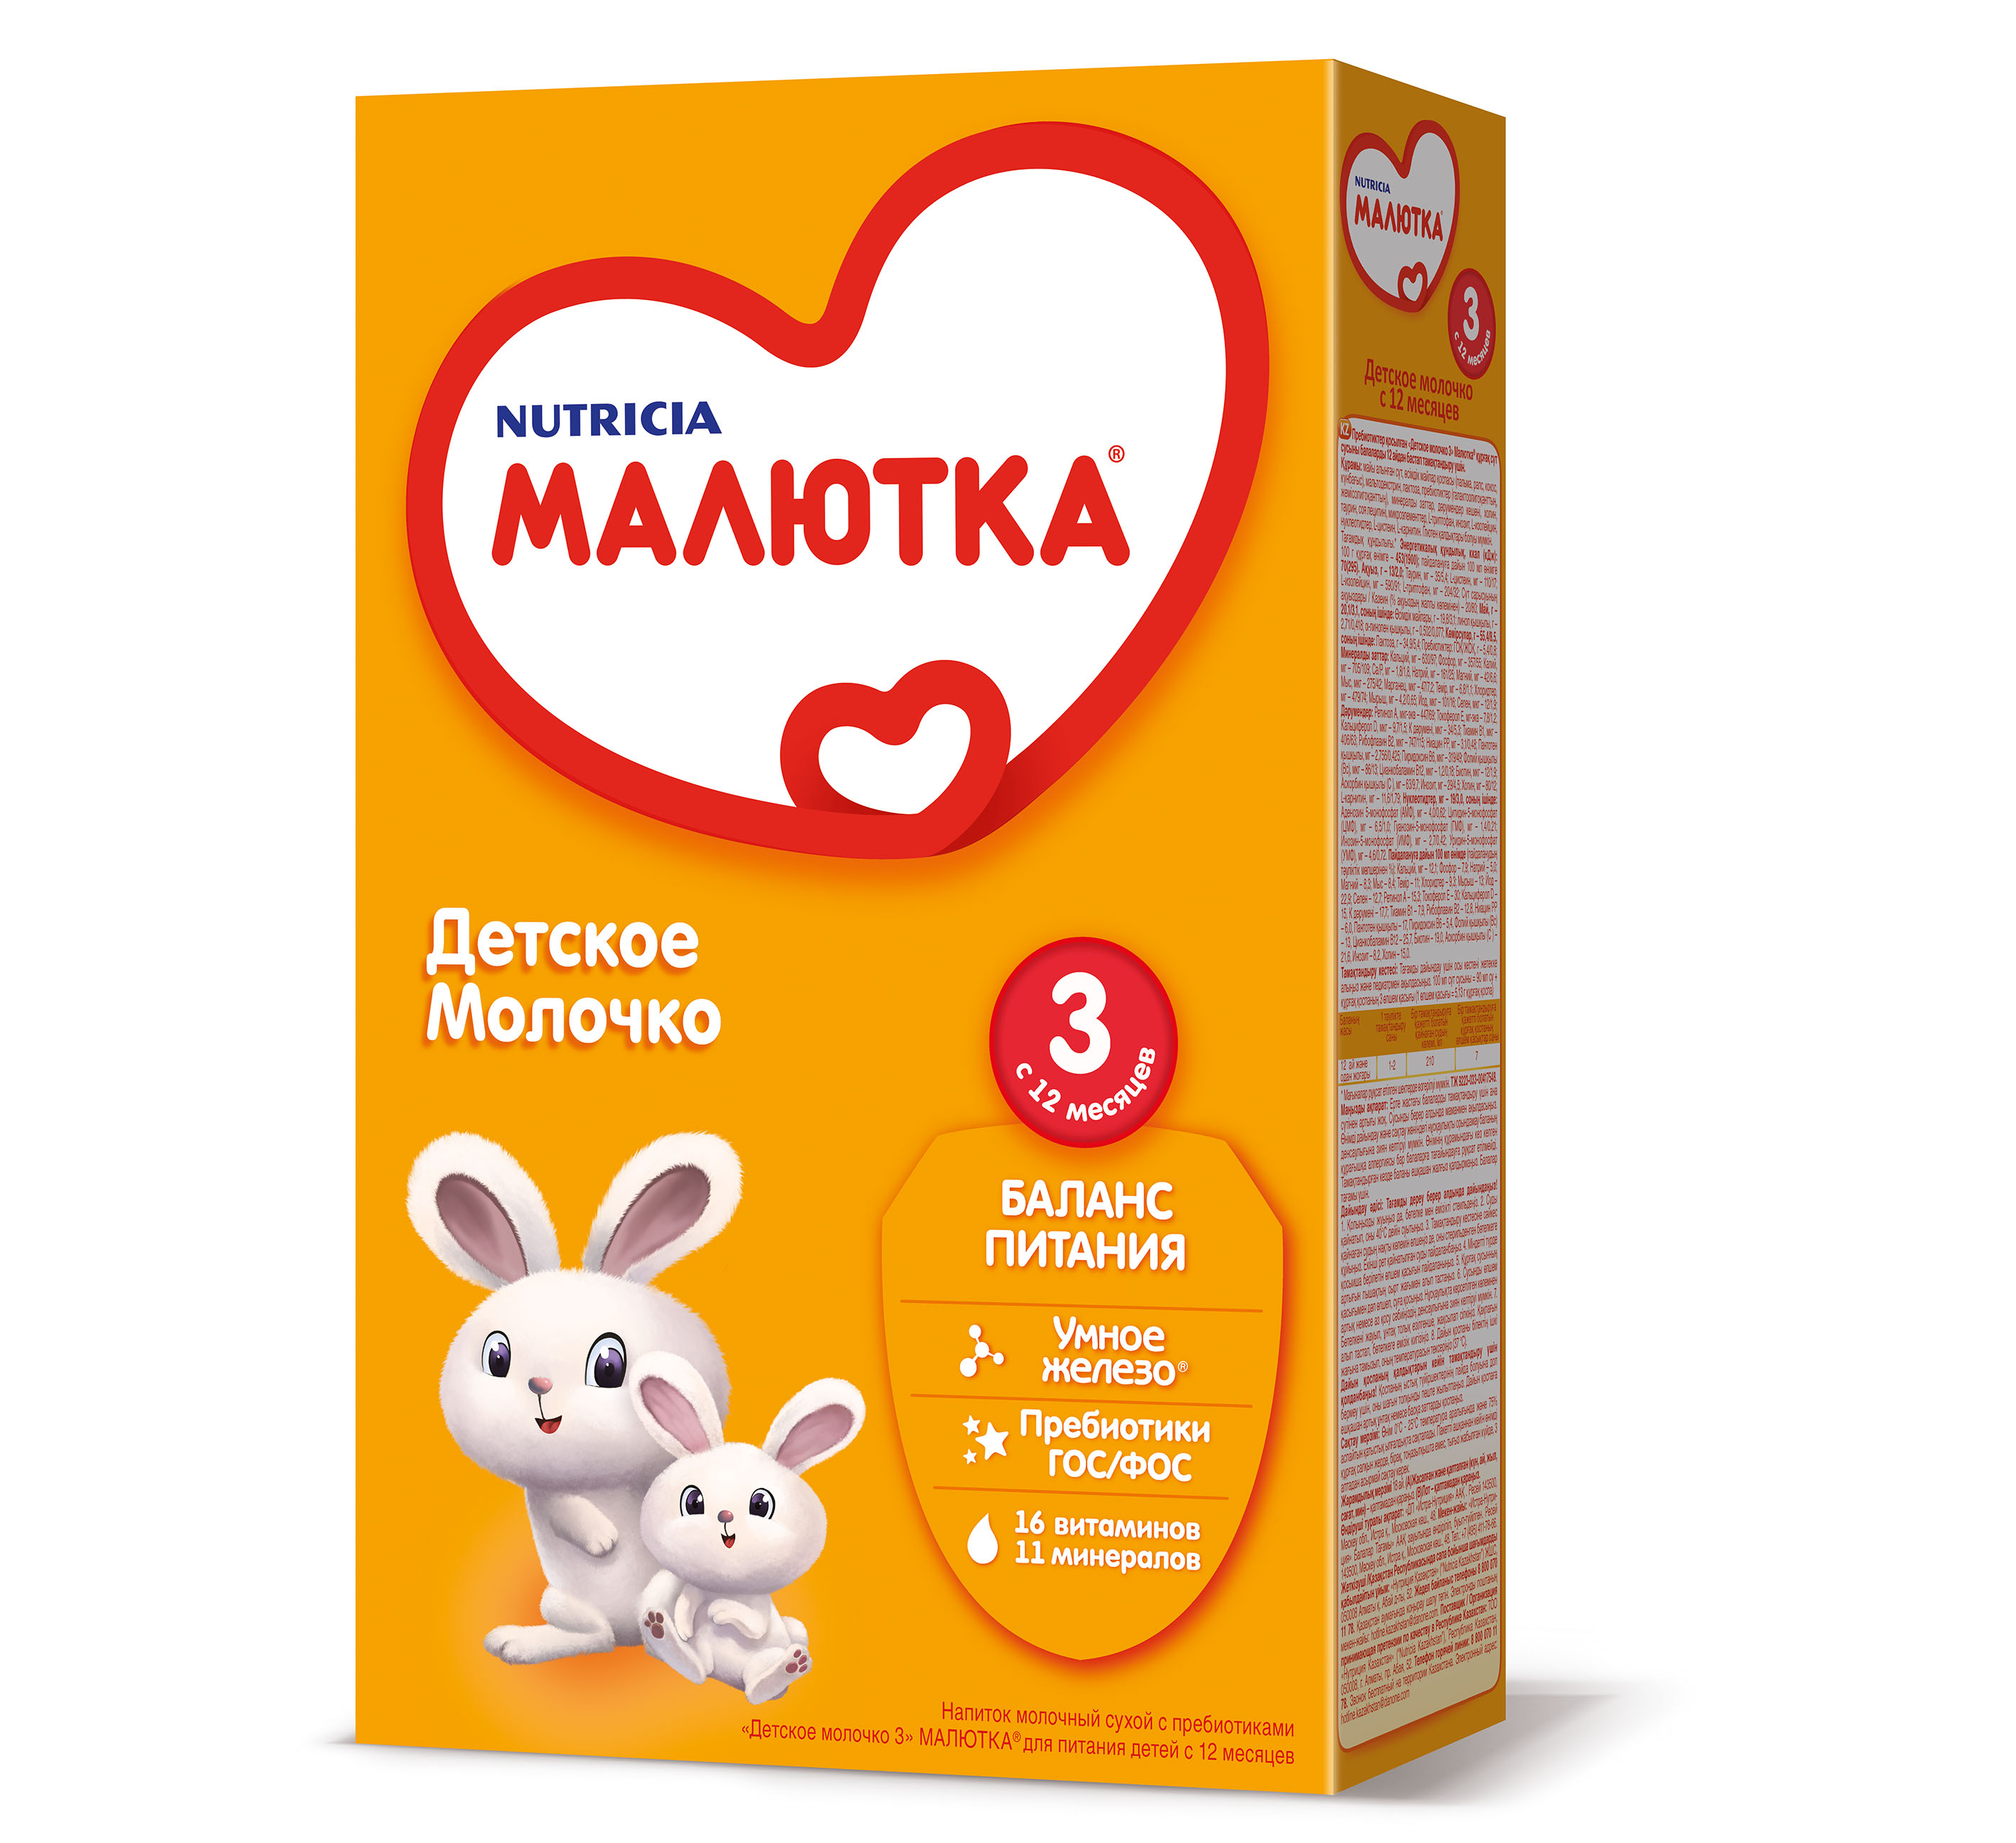 malyutka_new_package_design_02